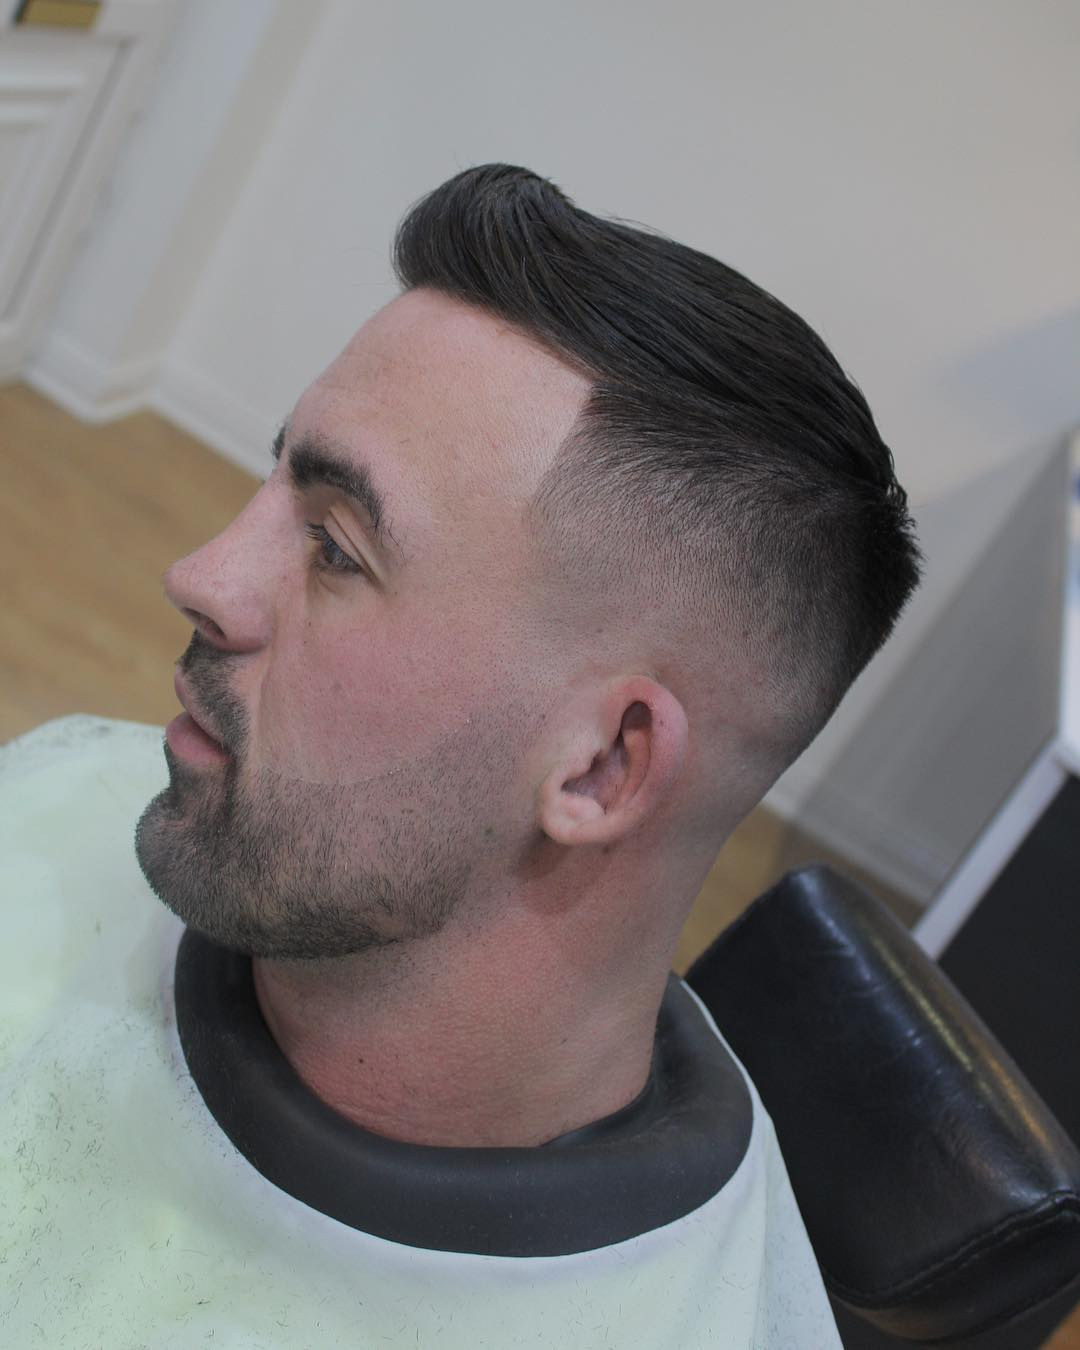 sean_the_barber_ short pompadour latest mens hairstyles 2018